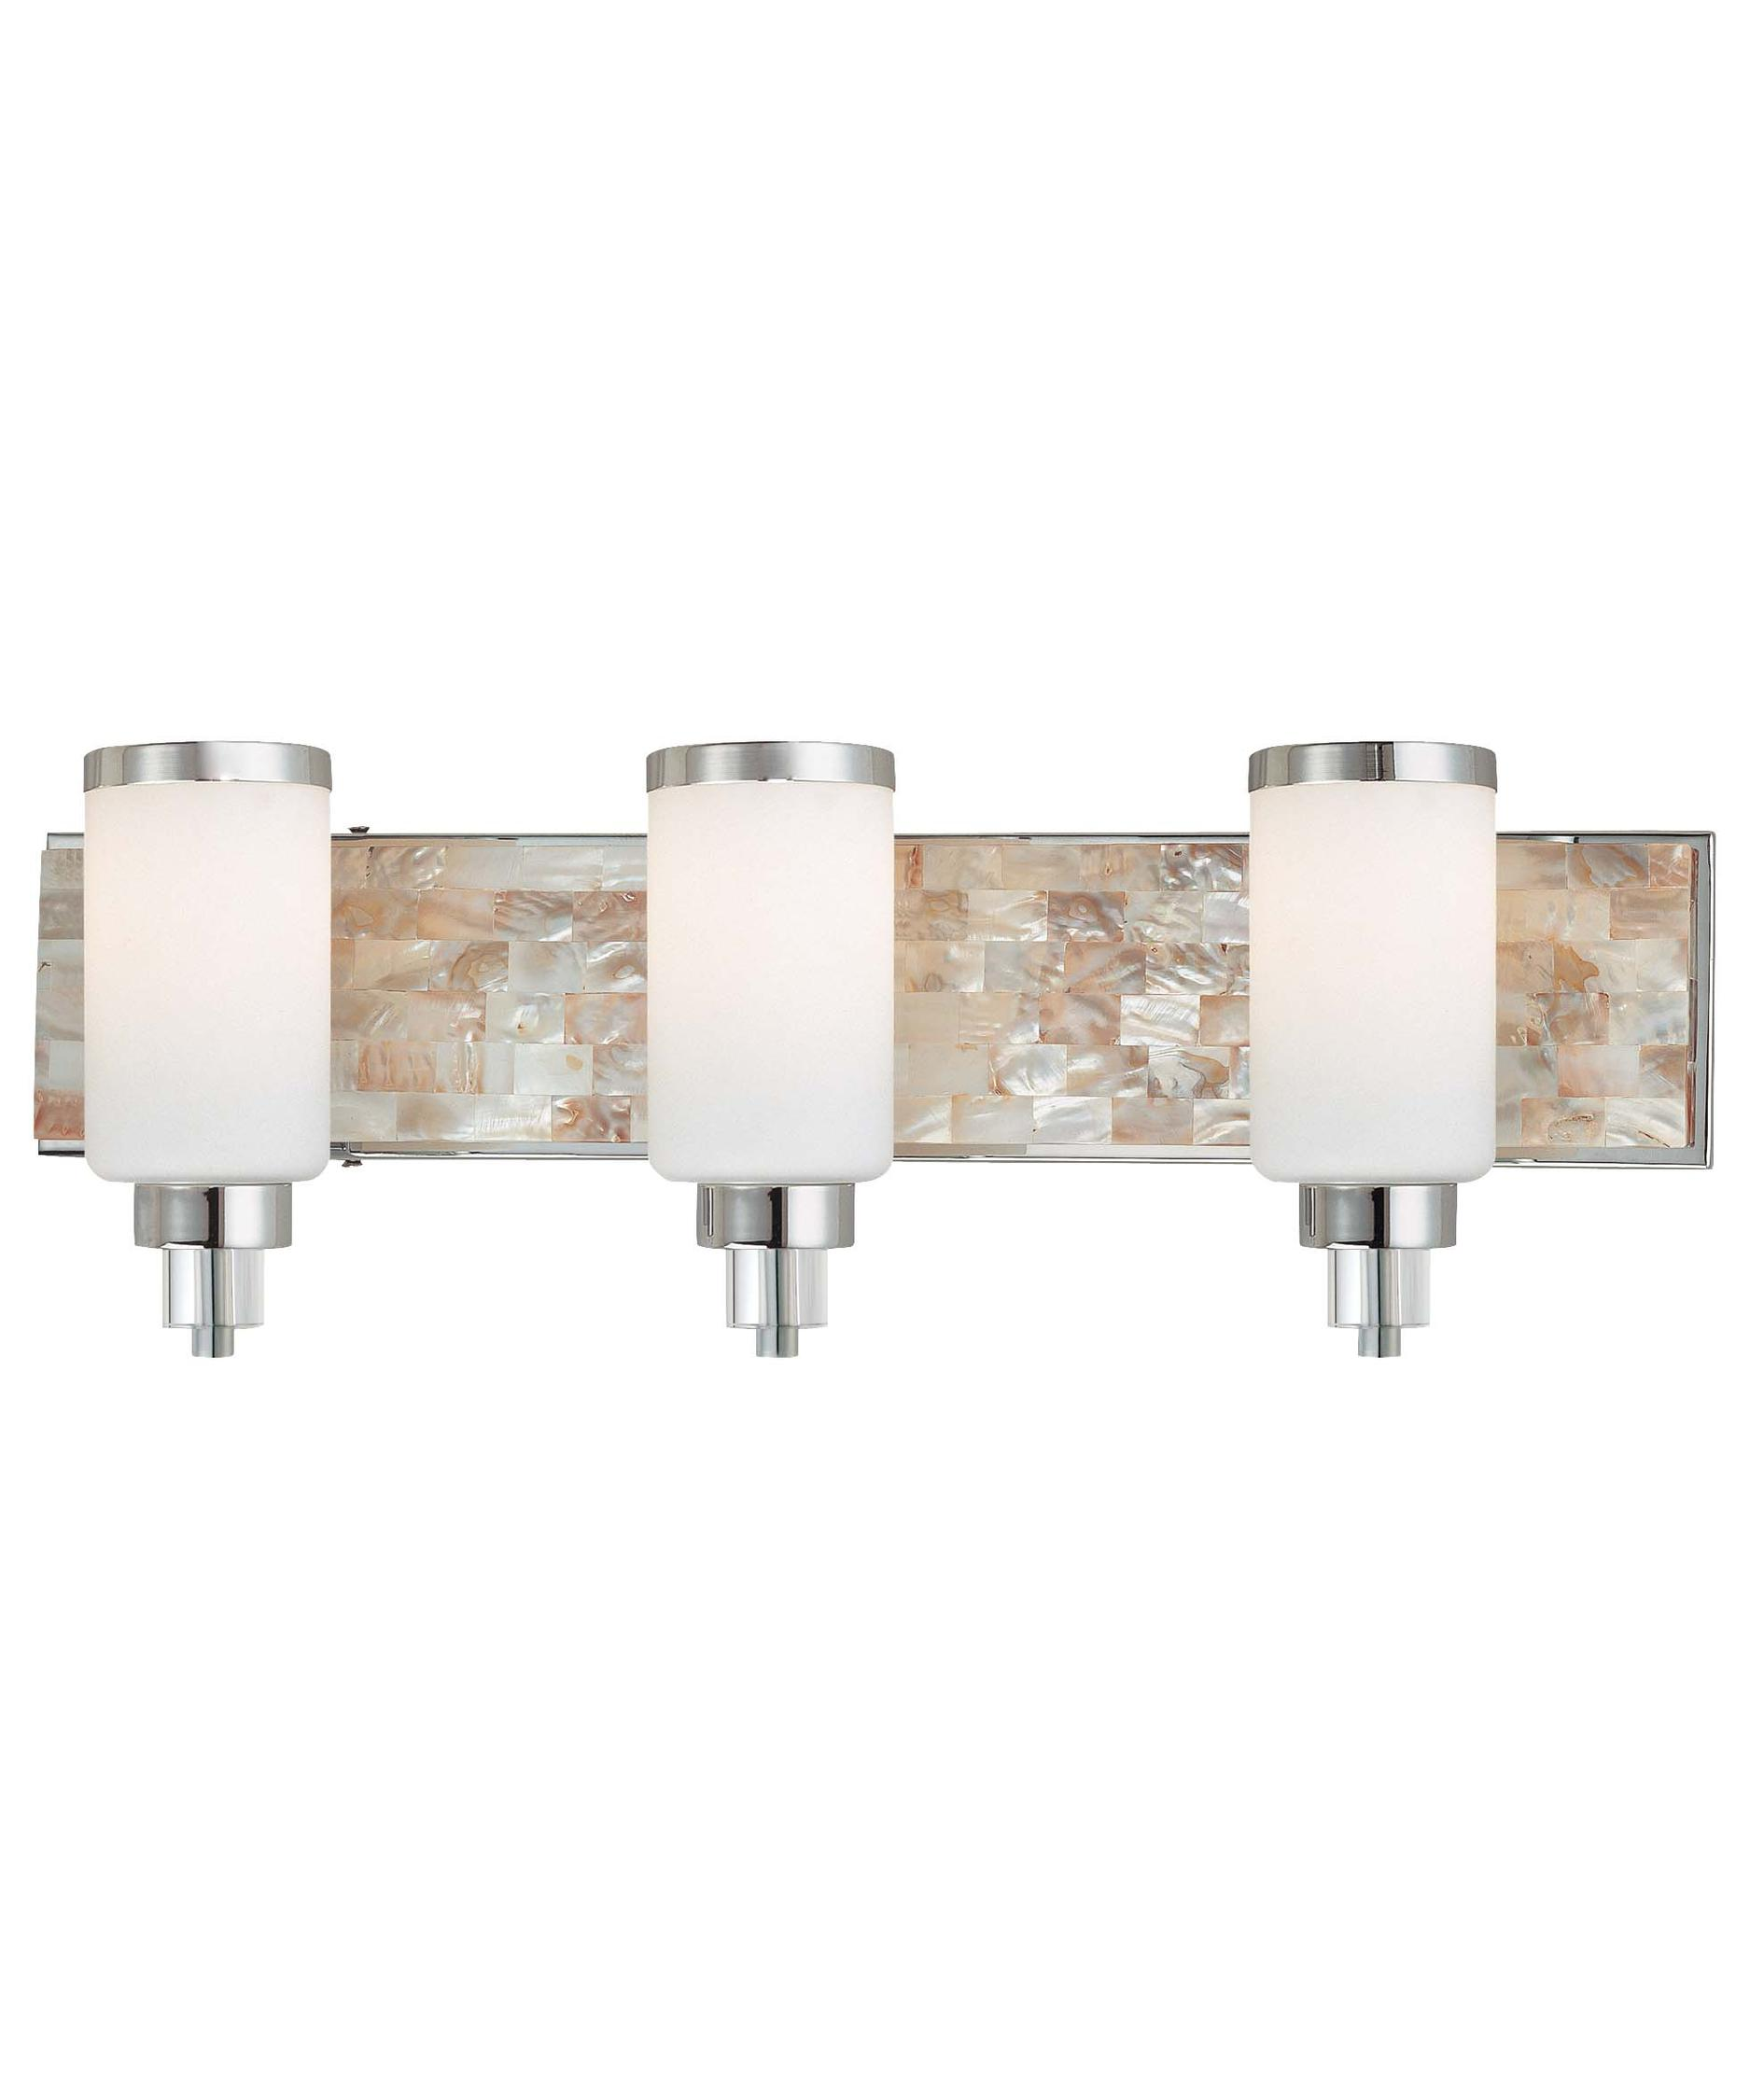 Minka Lavery Bathroom Lighting minka lavery 3243 cashelmara 26 inch wide bath vanity light